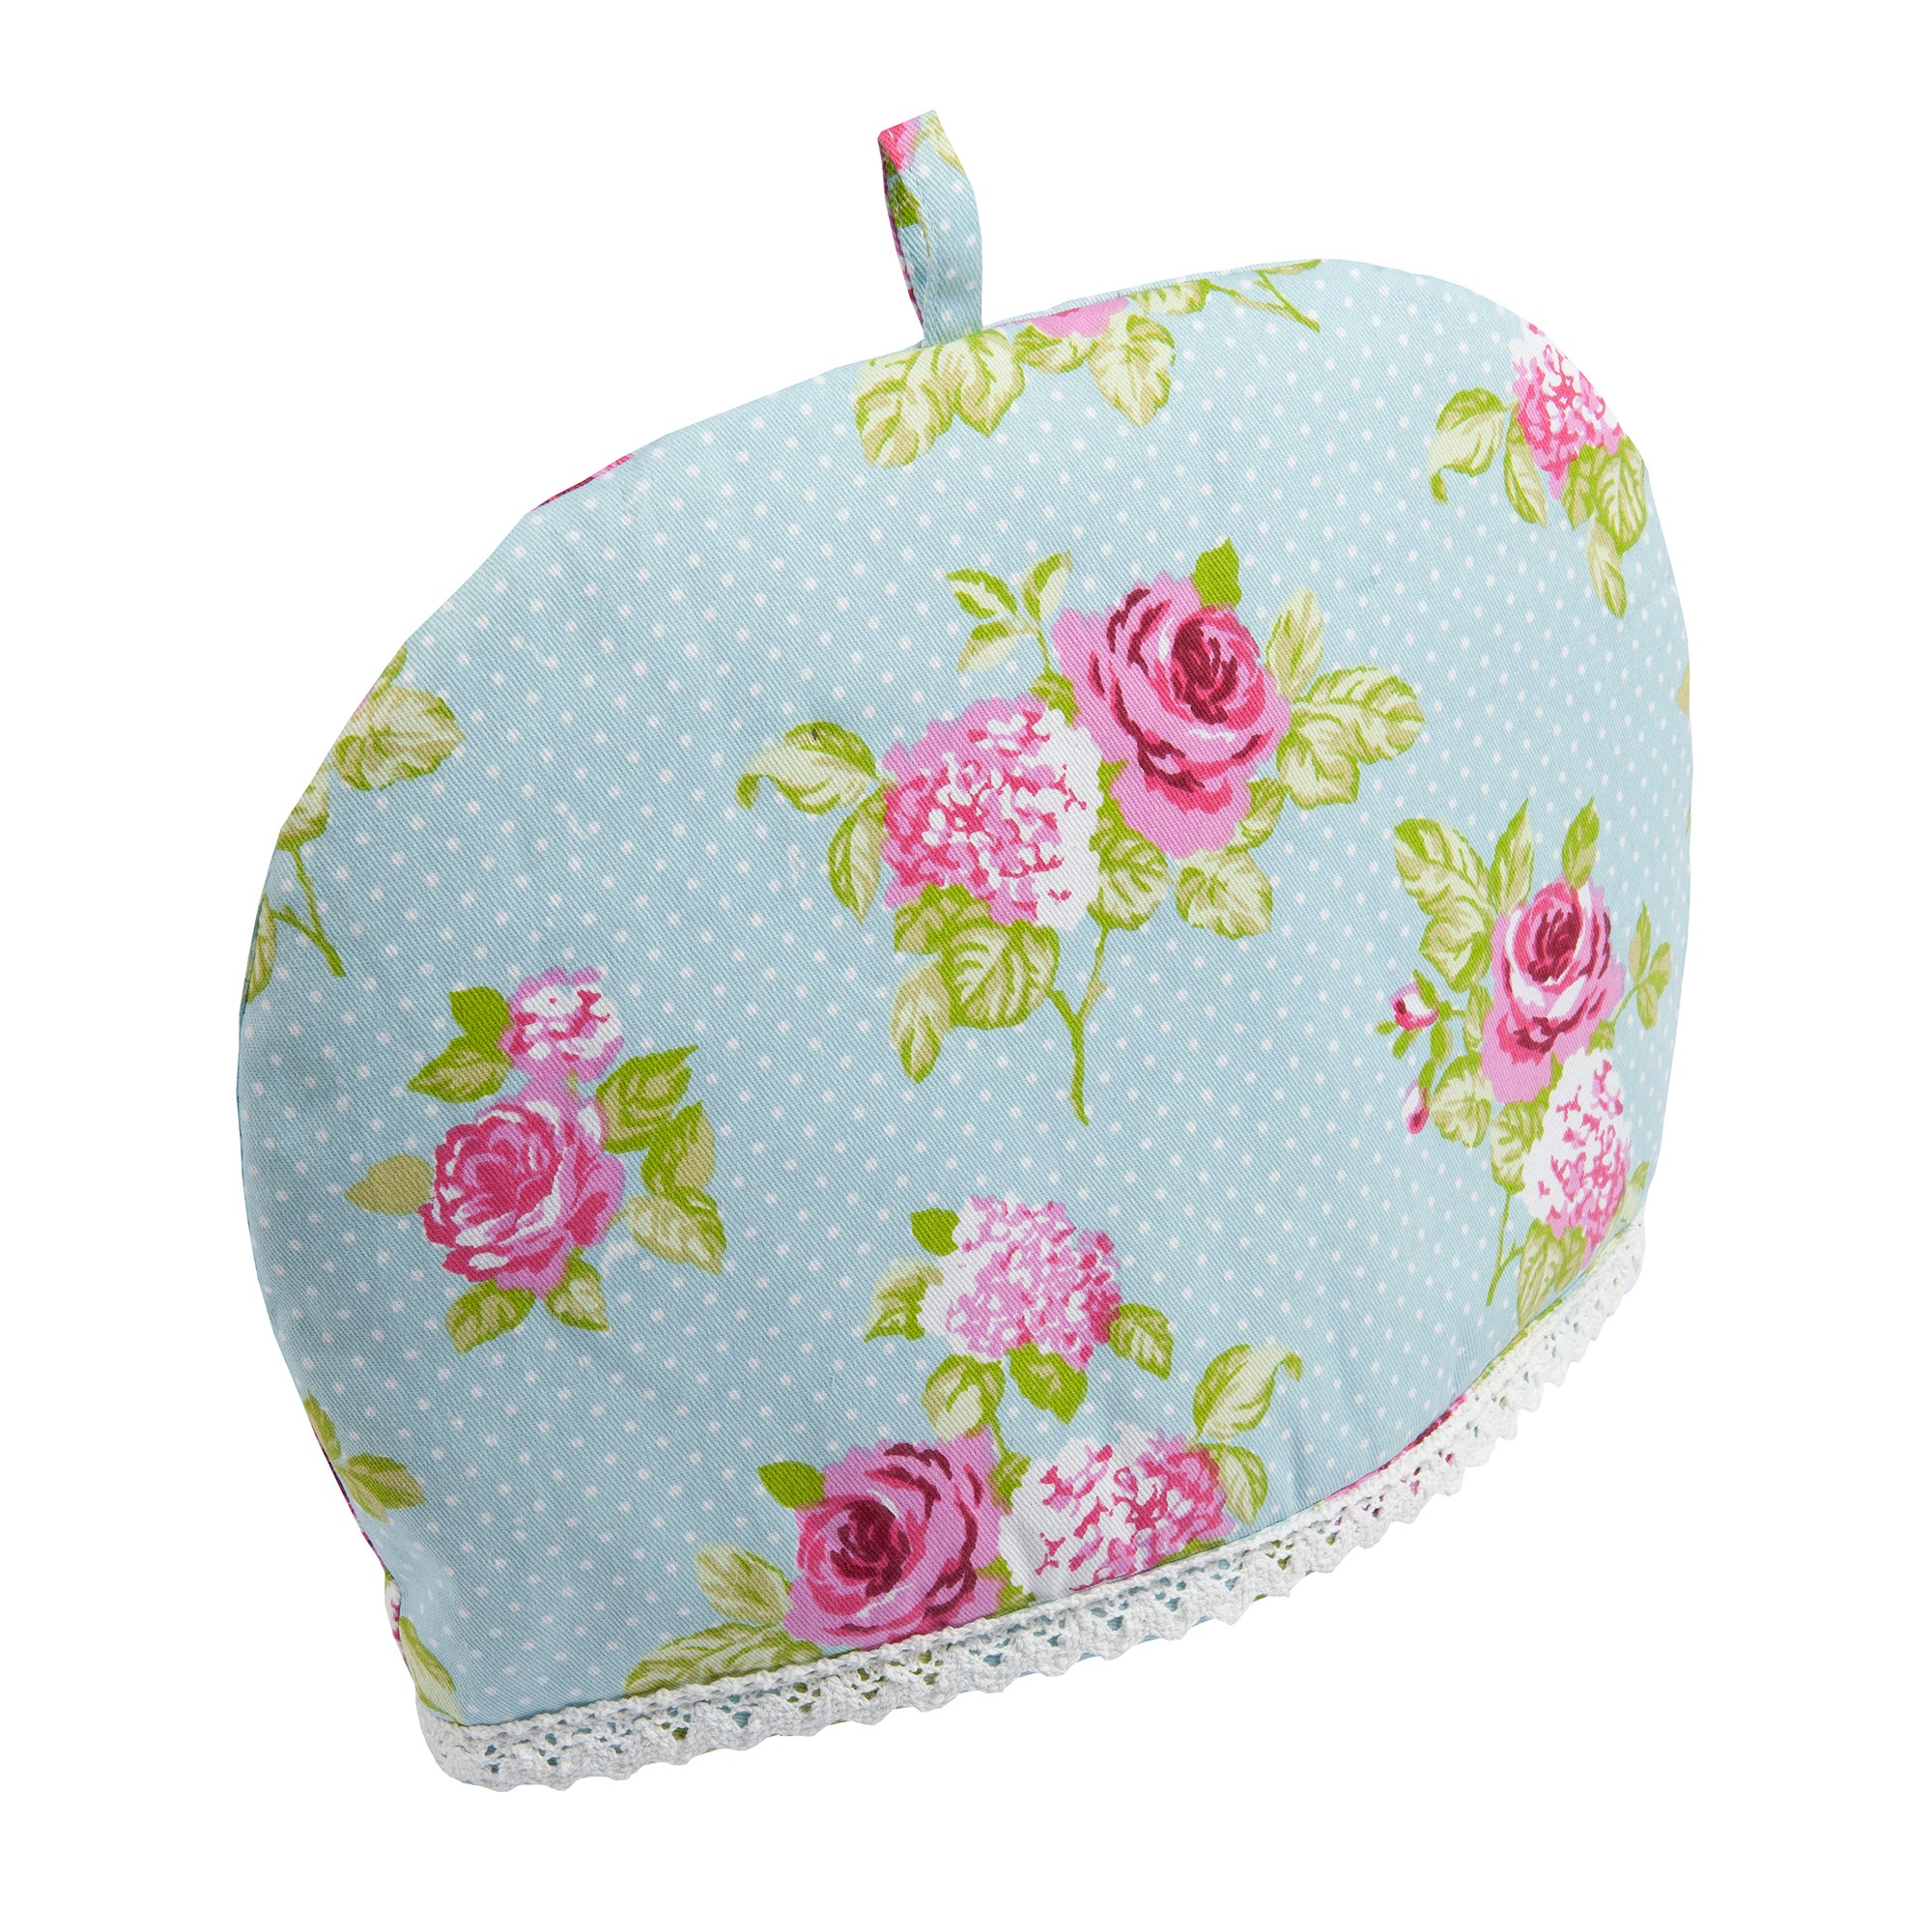 Rose and Ellis Clarendon Collection Tea Cosy